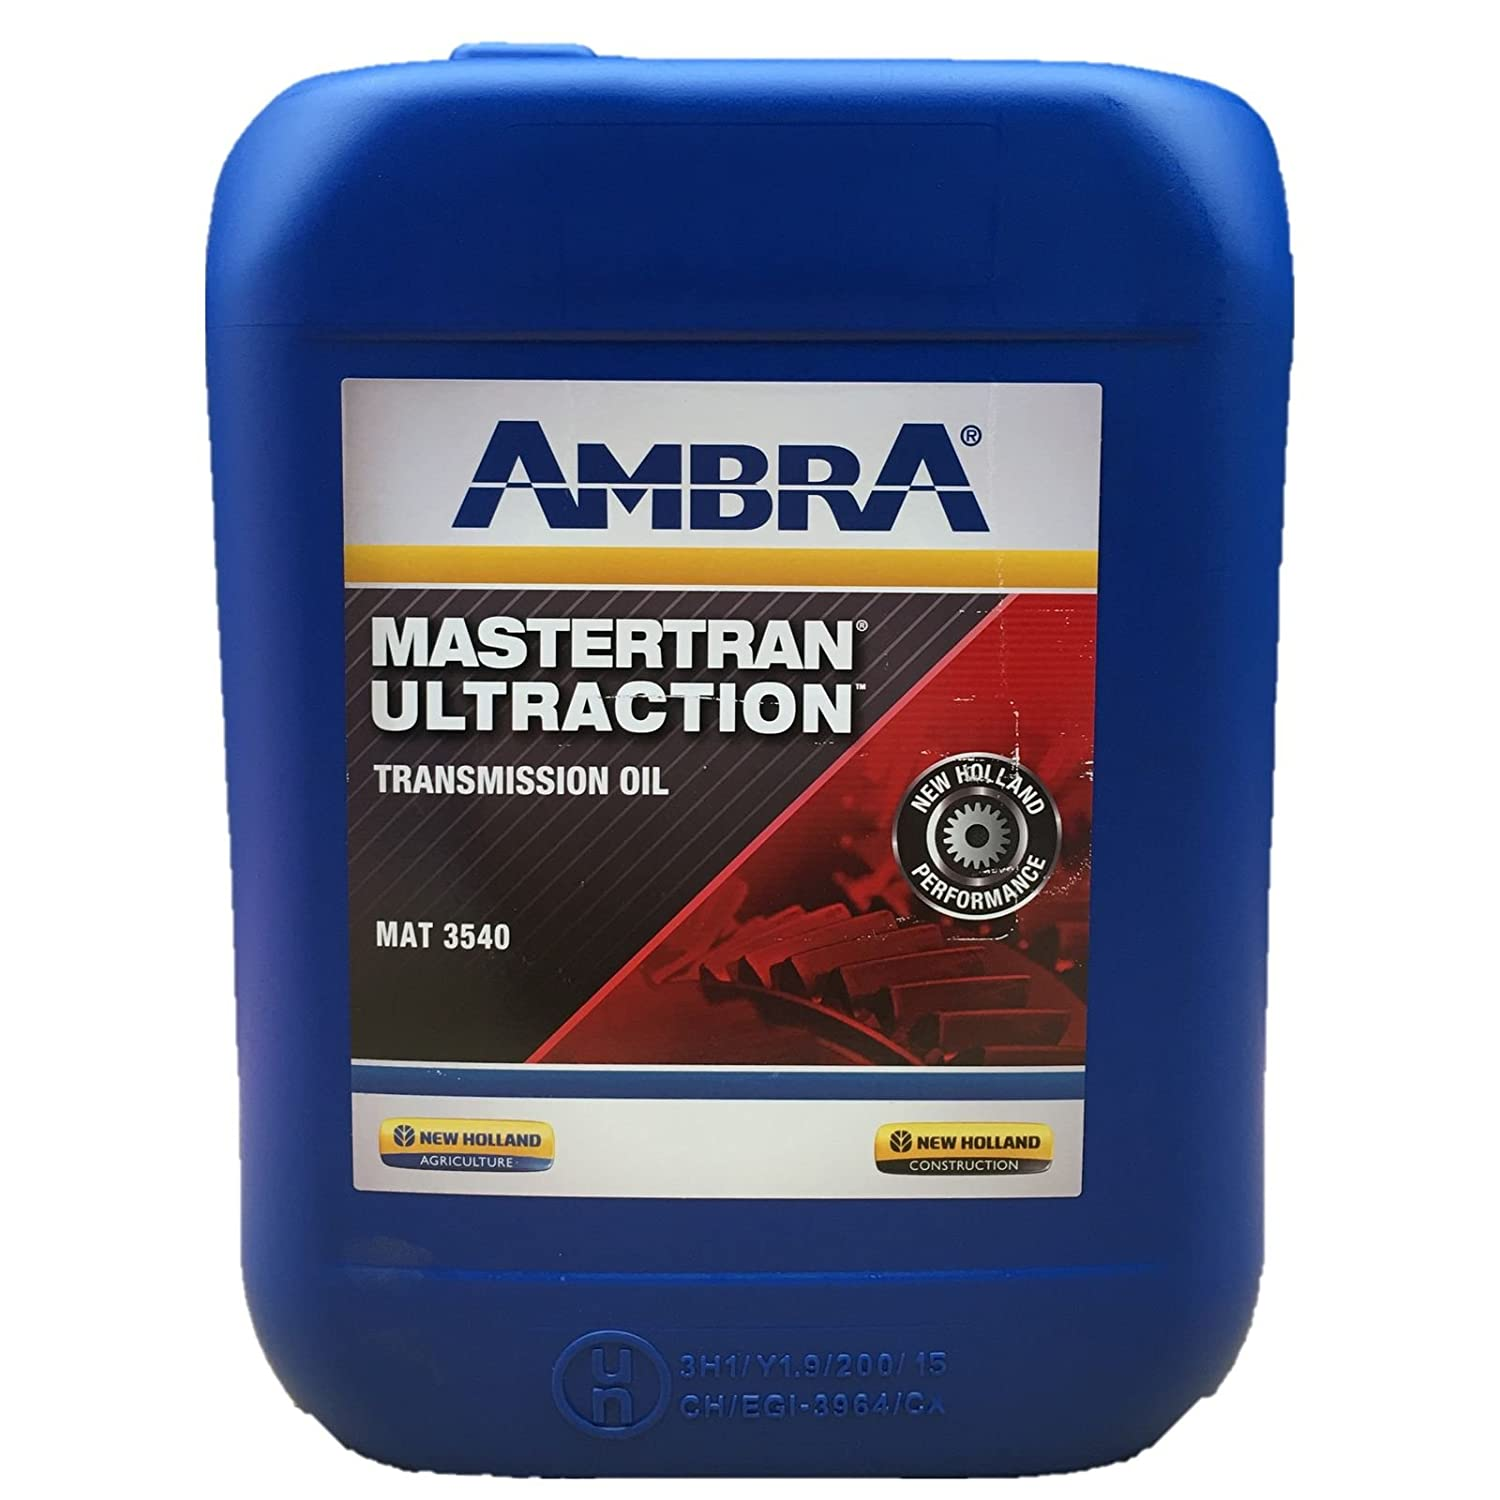 20 Litre Ambra Master Oil Ultra Action Mat 3540: Amazon co